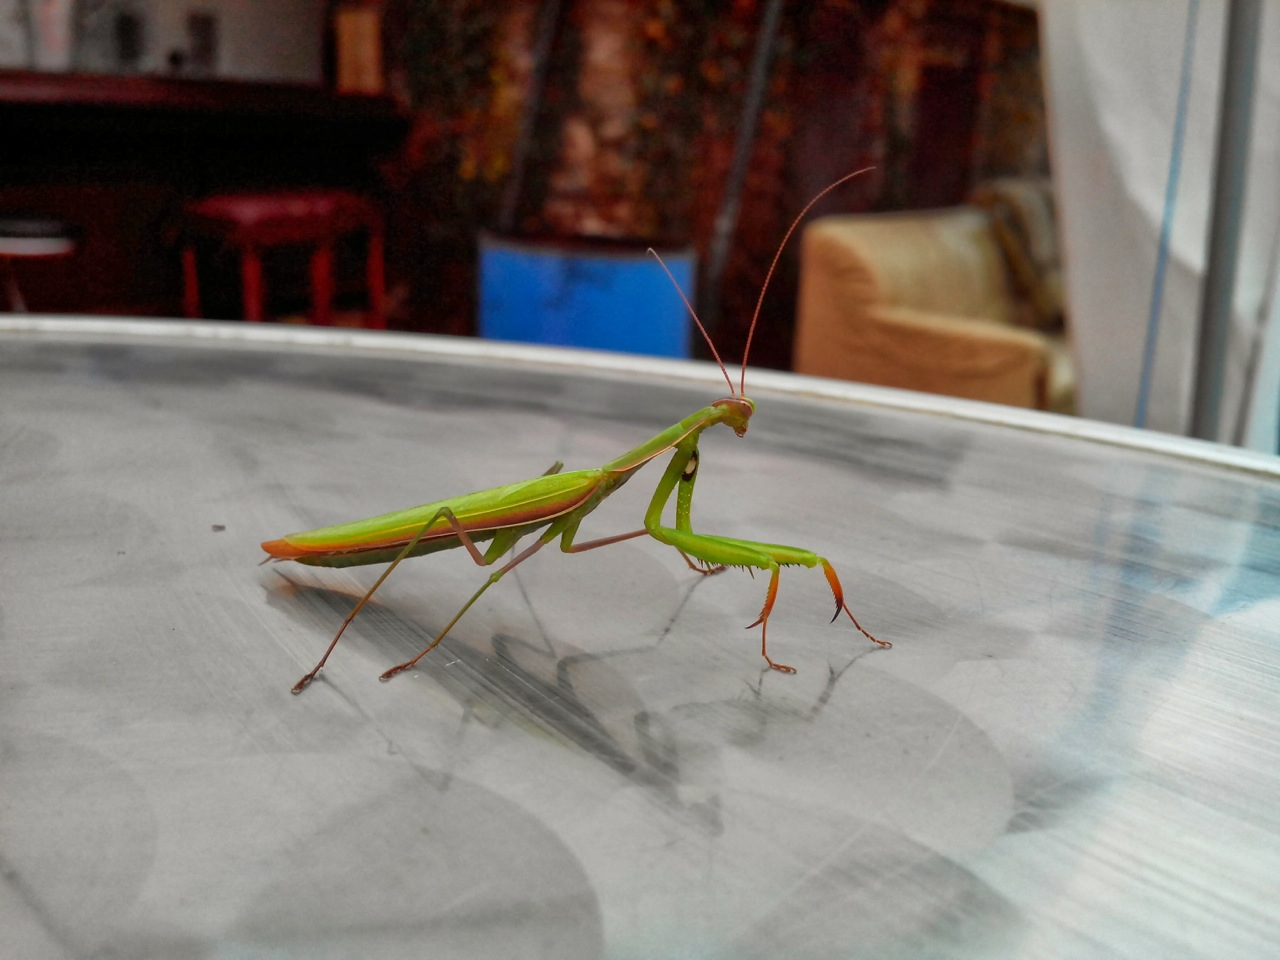 This prayer mantis lands on my coffee table